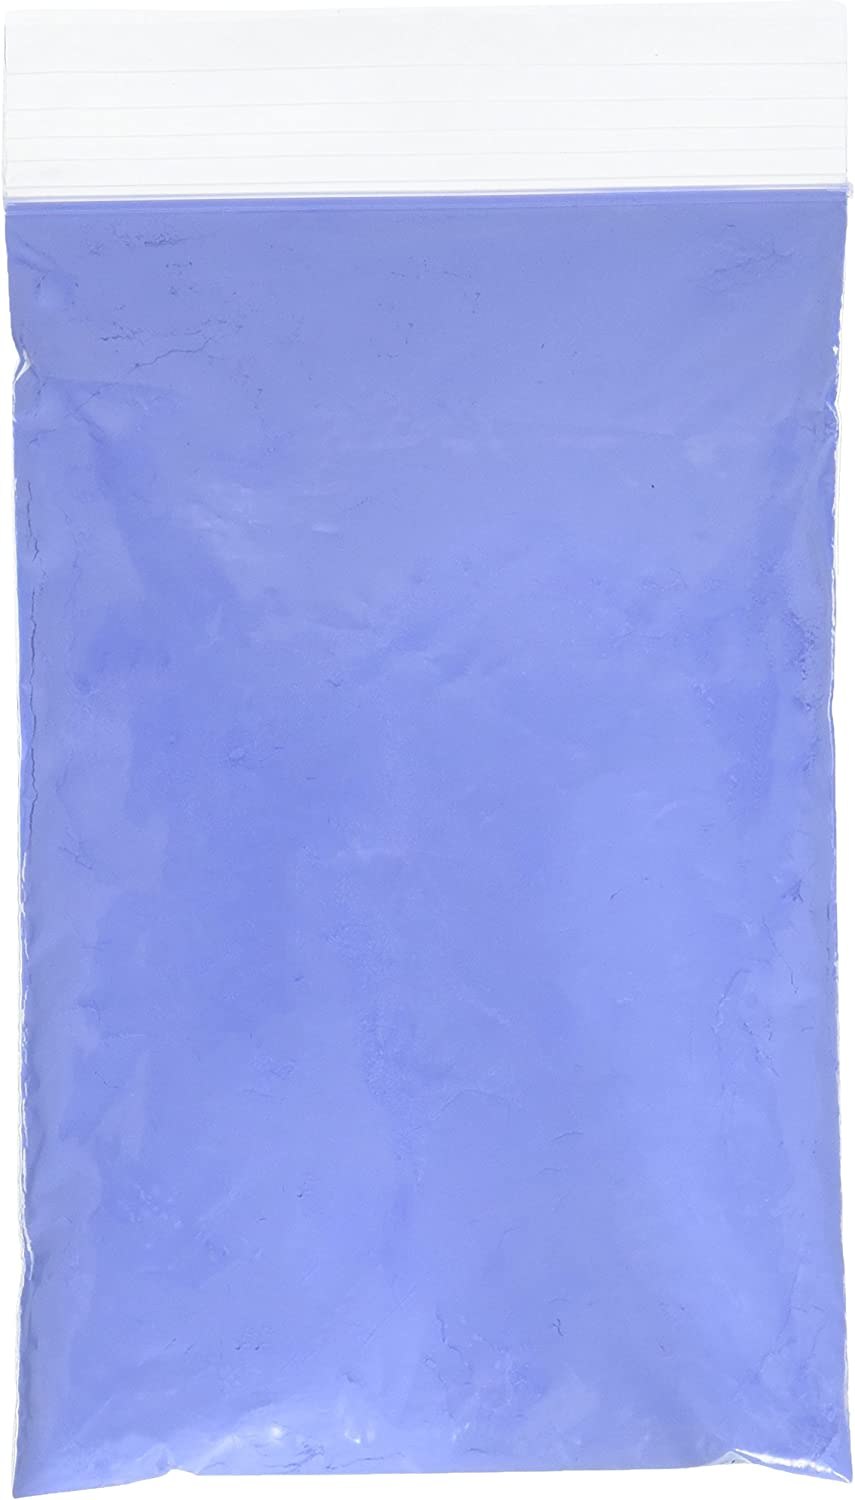 Hancy Blue Quilt Pounce Pad 4-Ounce with Chalk Powder